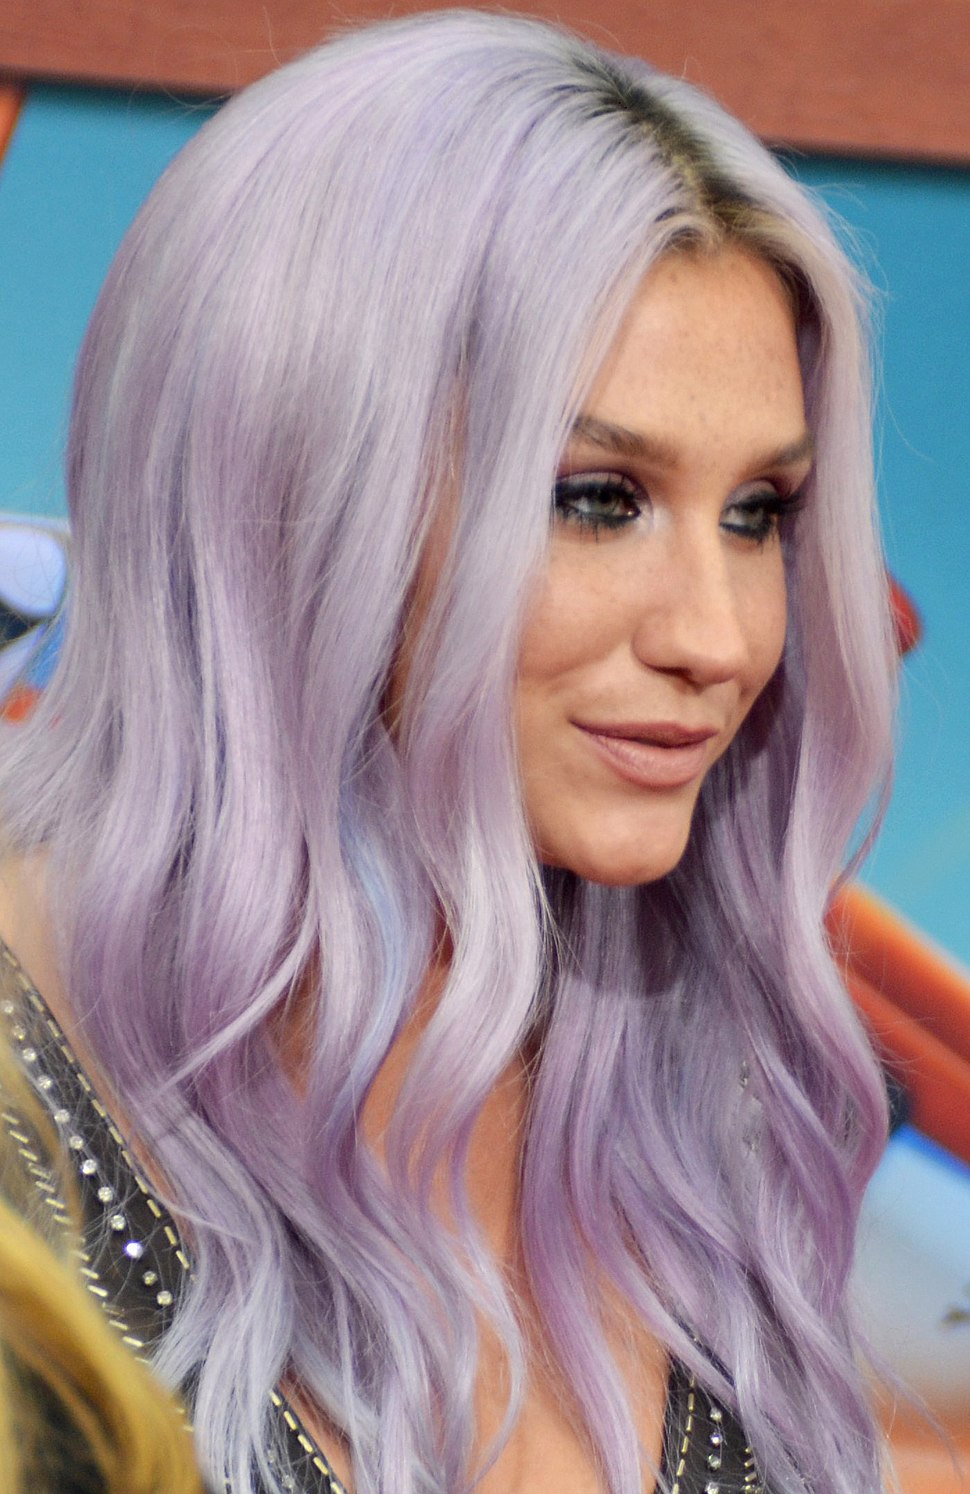 Kesha Planes Fire %26 Rescue premiere July 2014 (cropped).jpg